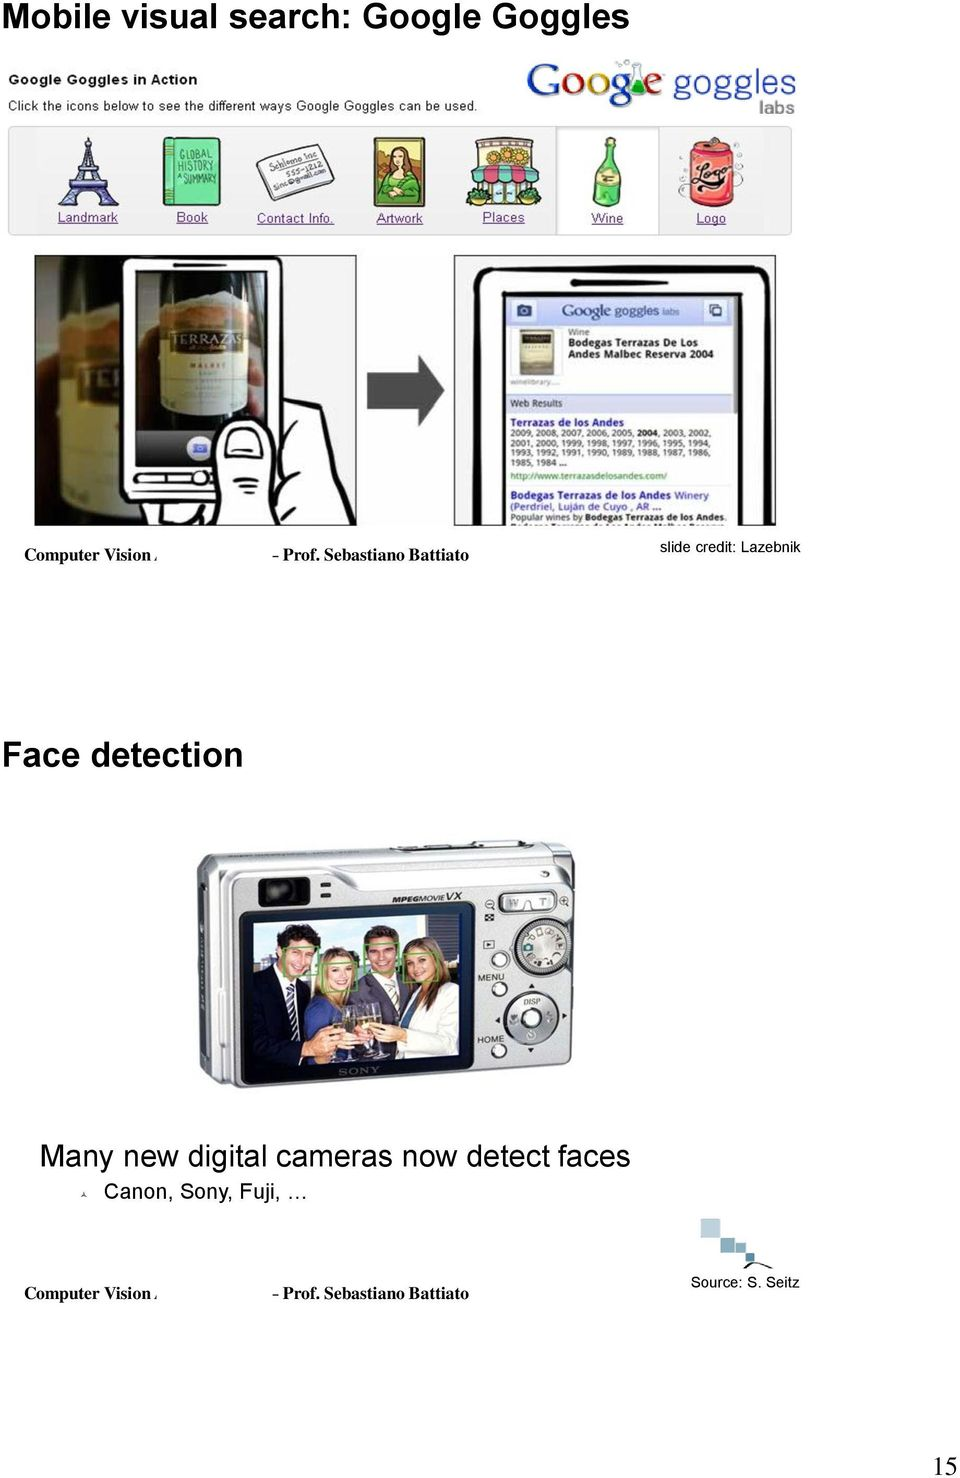 Many new digital cameras now detect